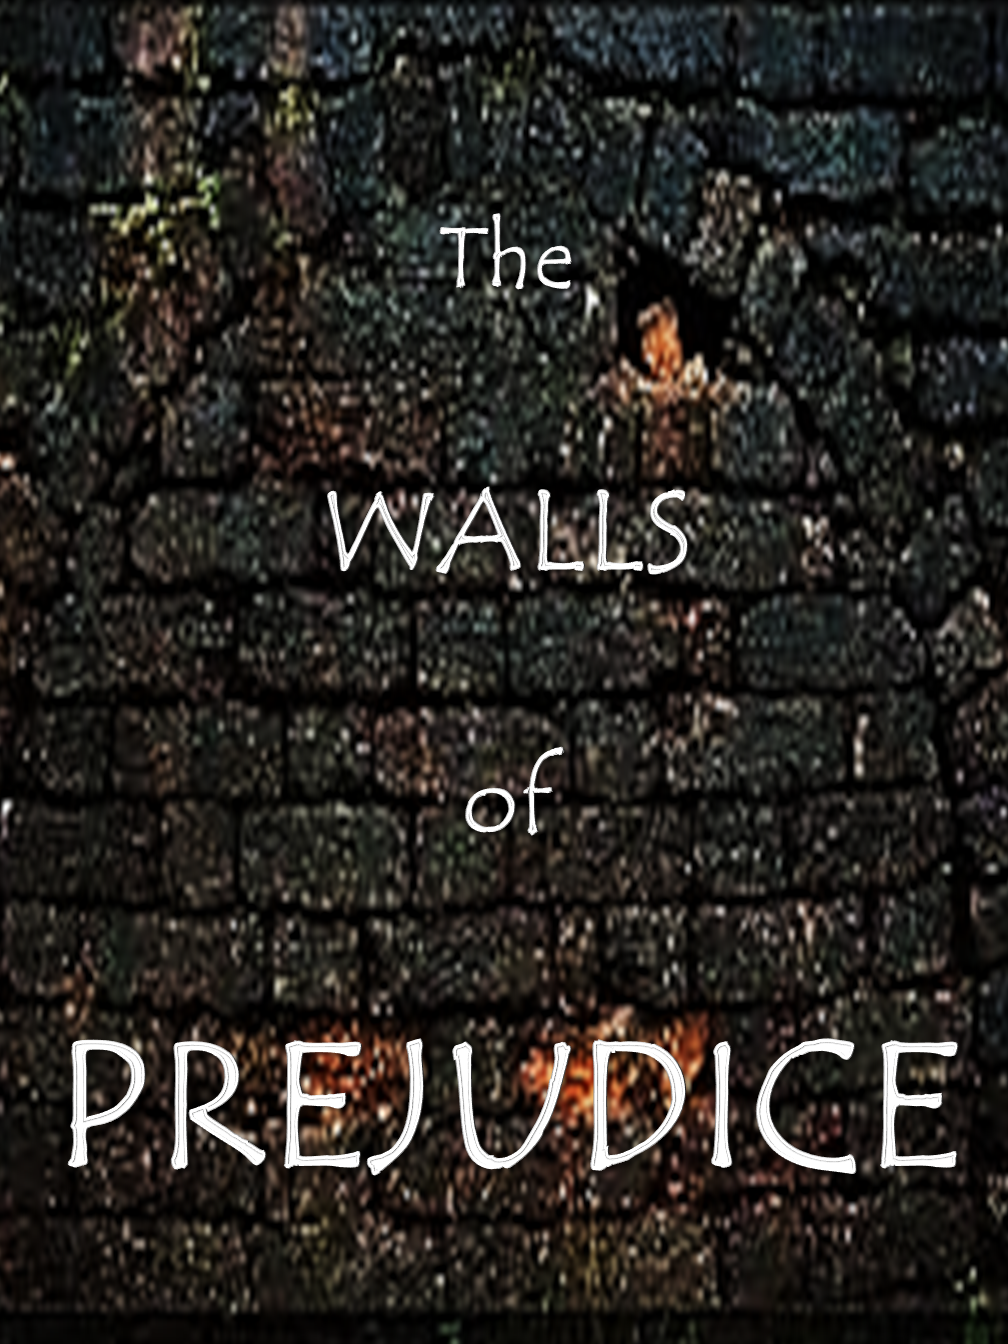 The Walls of Prejudice